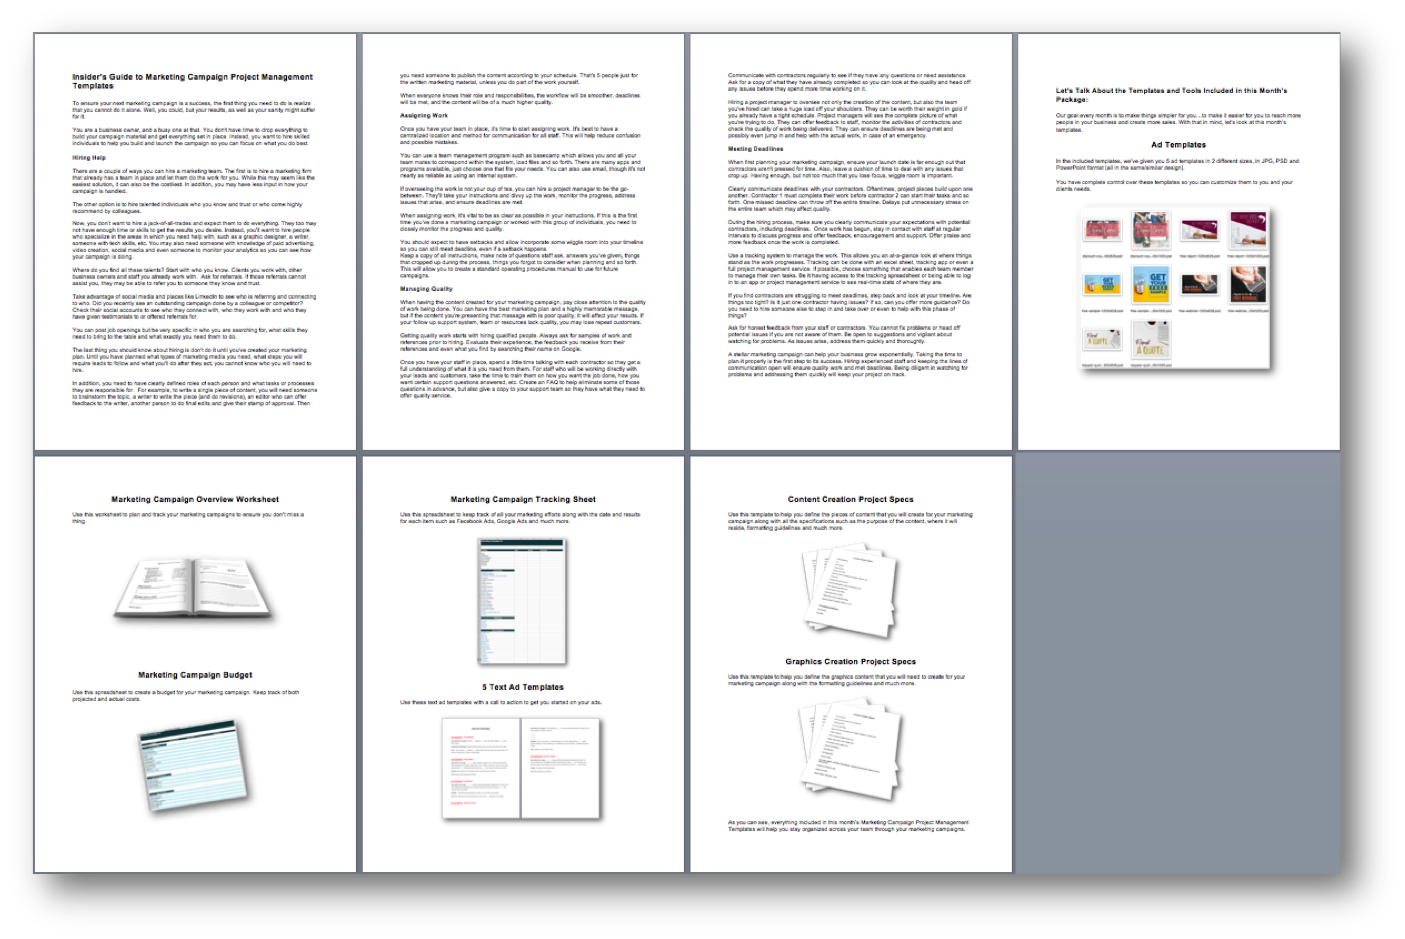 Marketing Campaign Project Management Templates User Guide